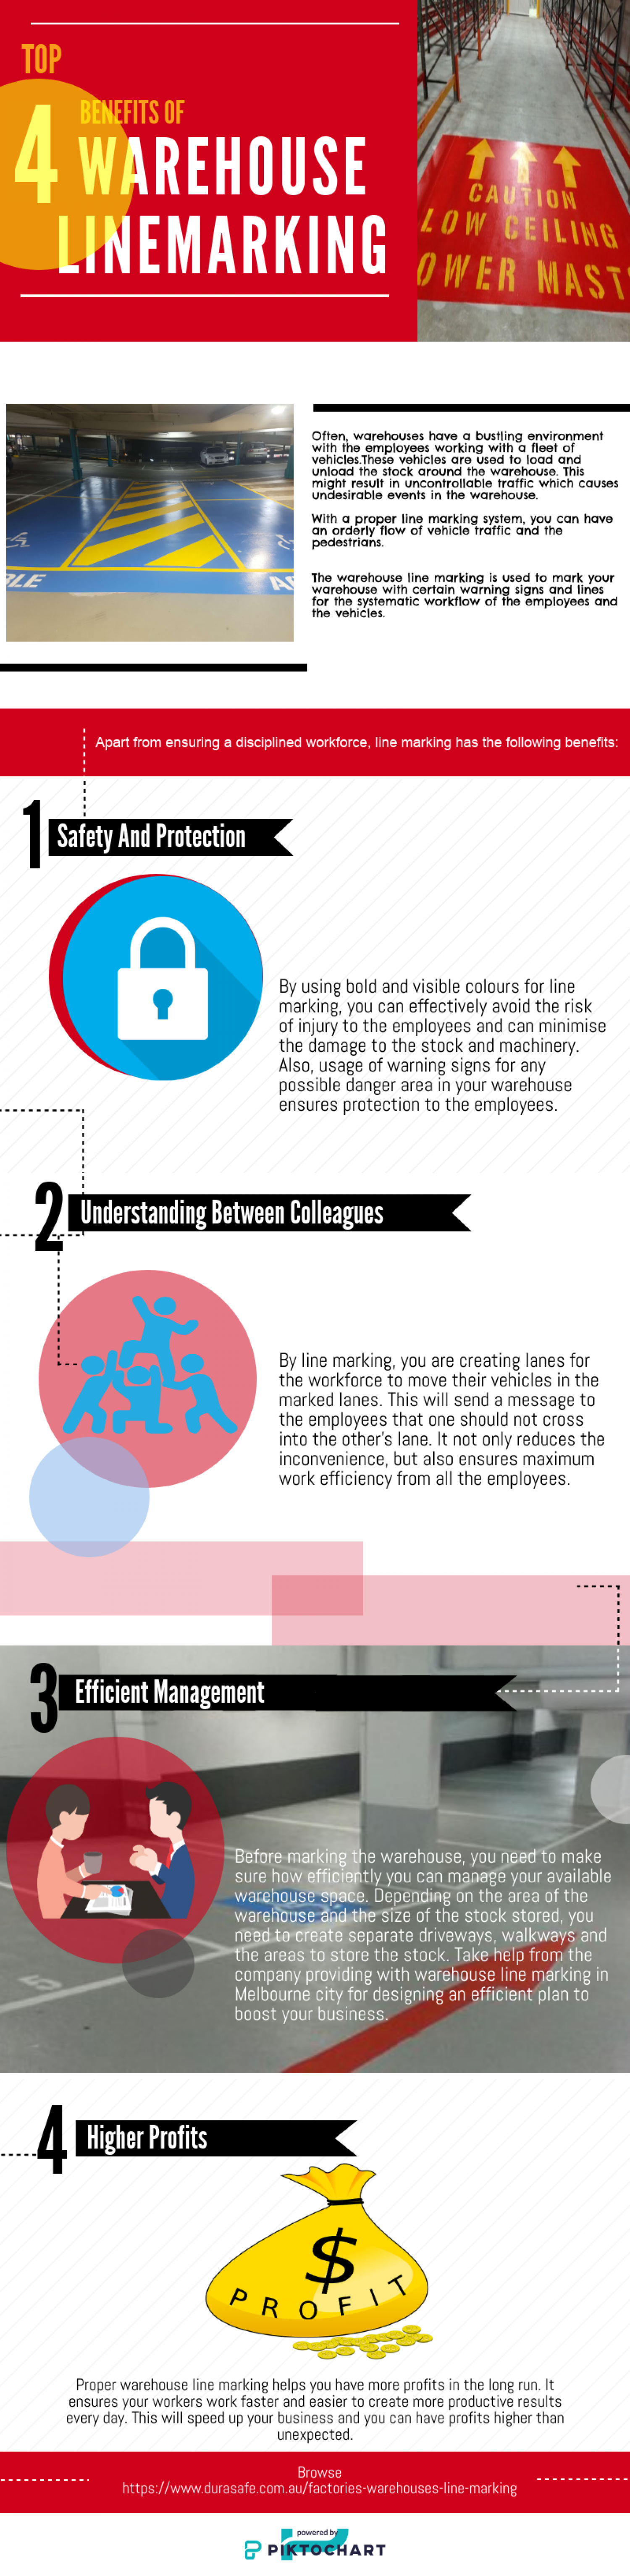 Top 4 Benefits Of Warehouse Linemarking - Infographic Infographic